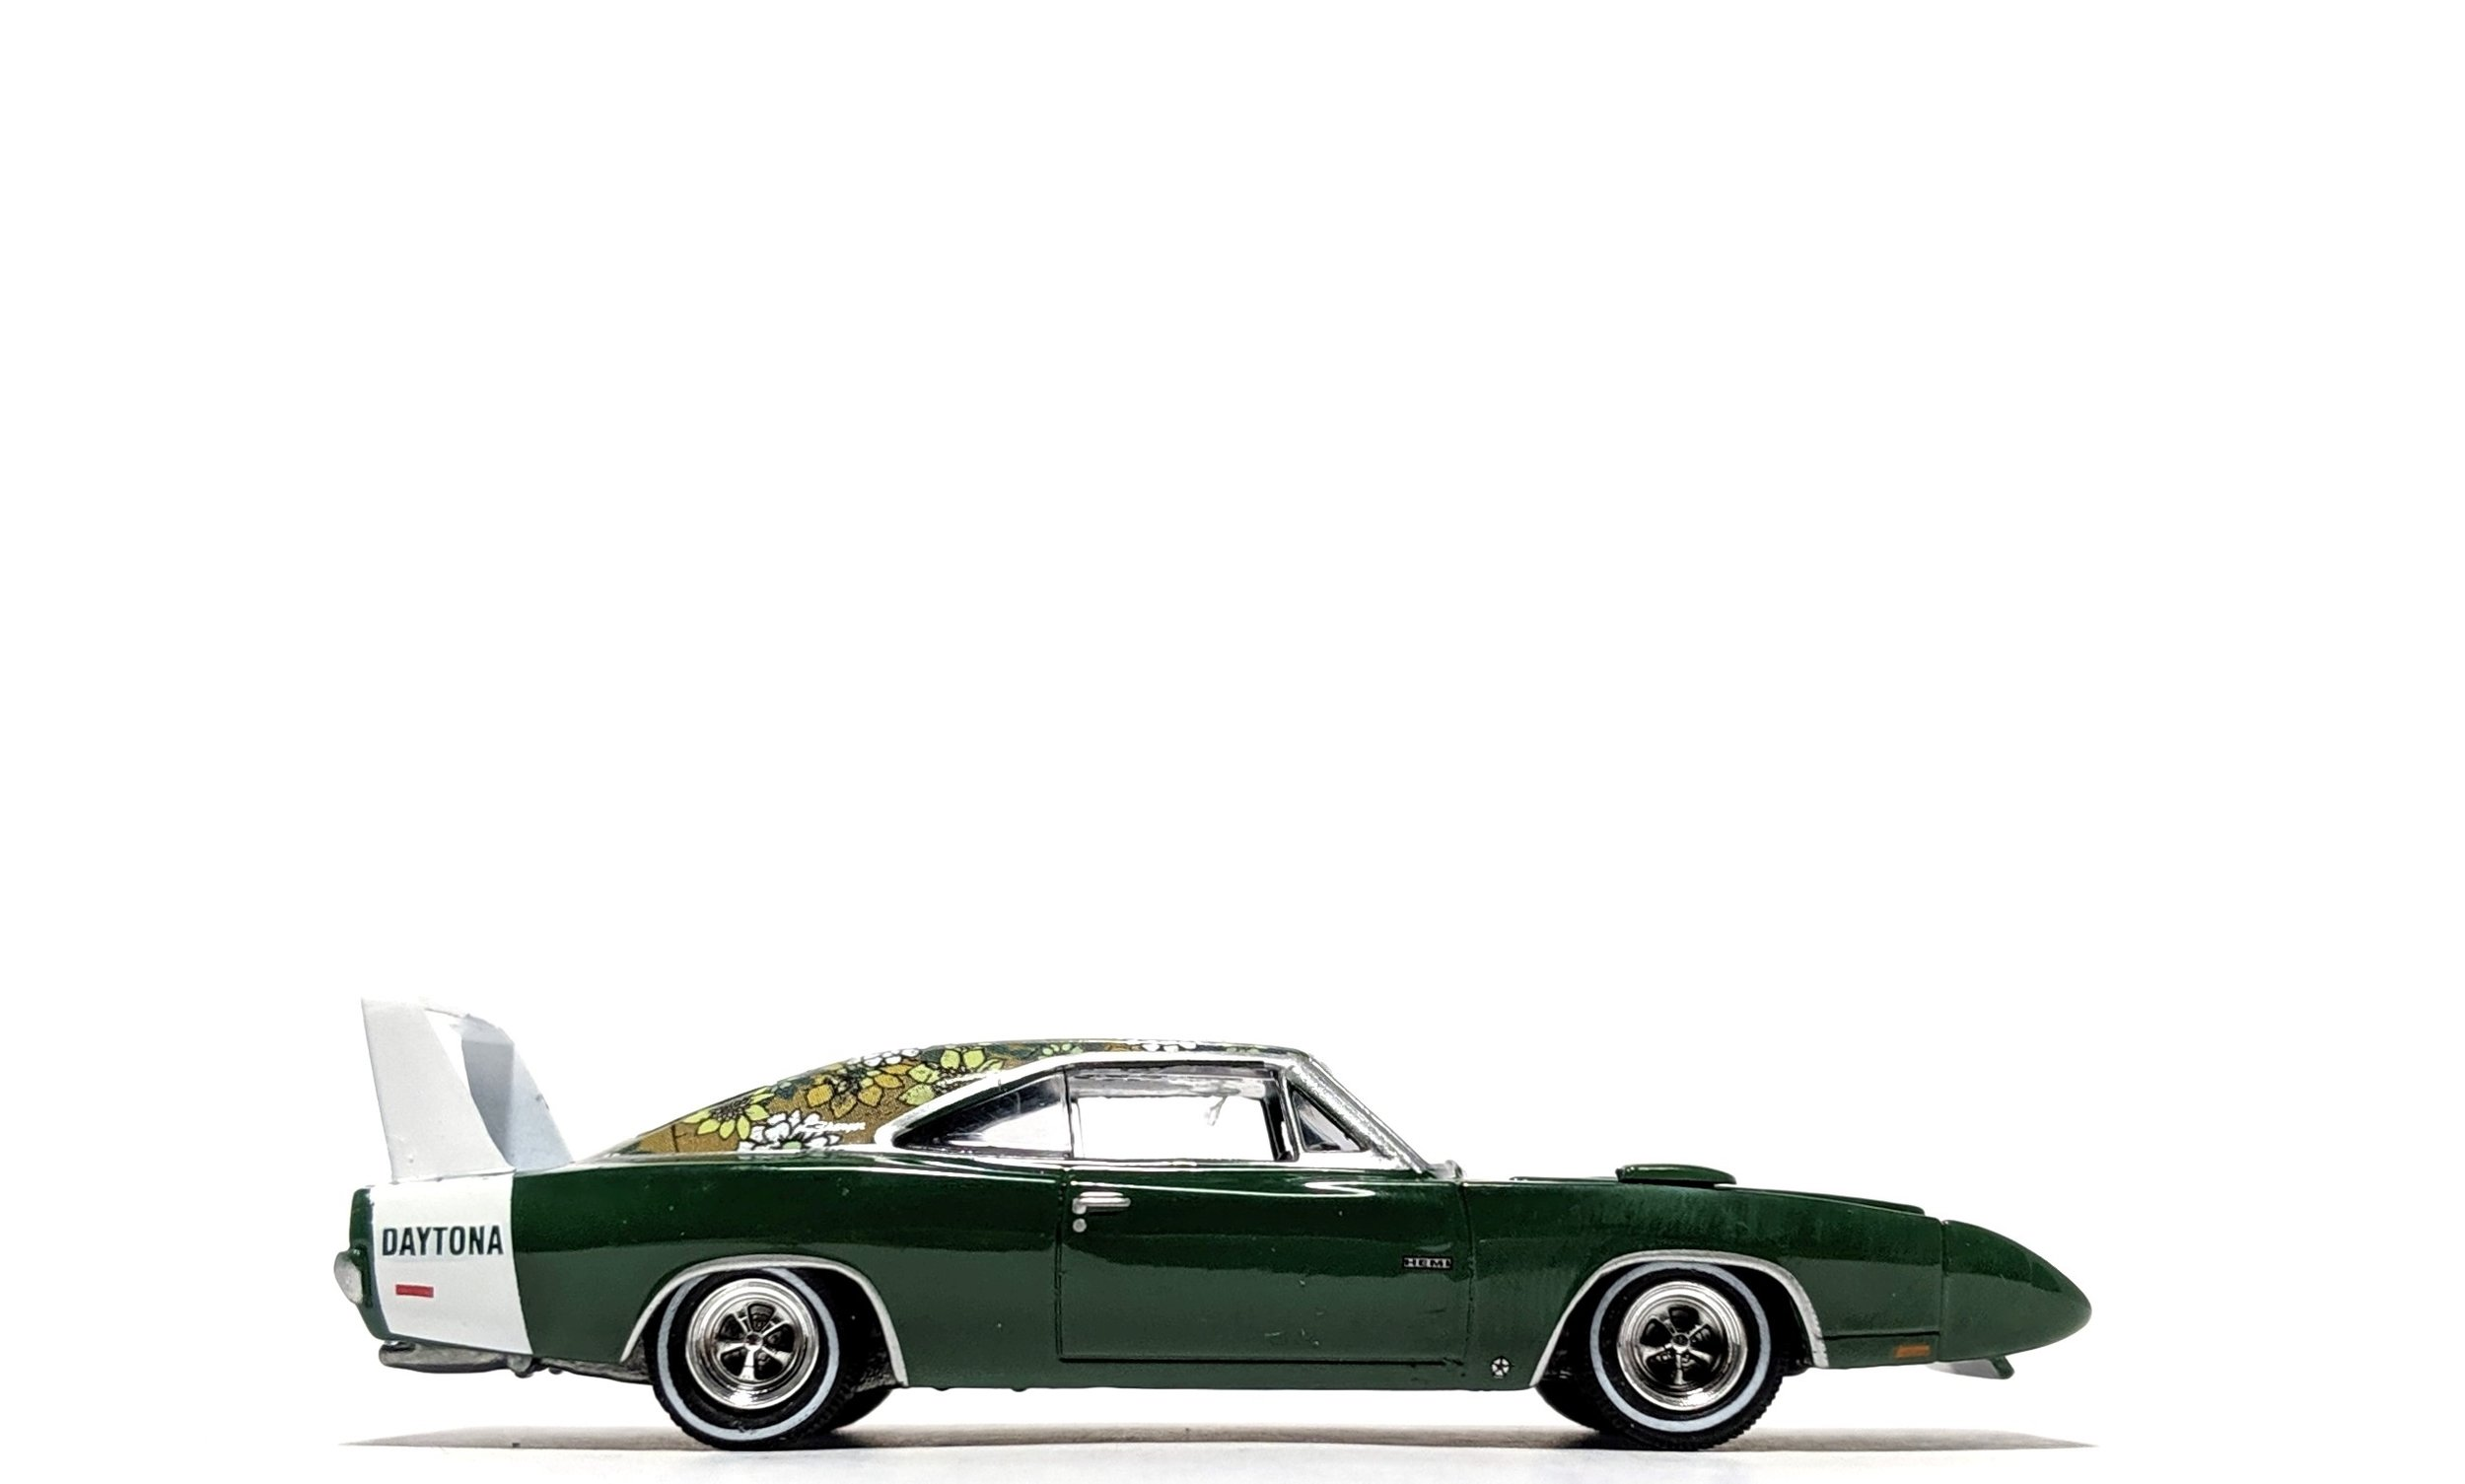 1969 Dodge Charger Daytona Mod Top - Greenlight